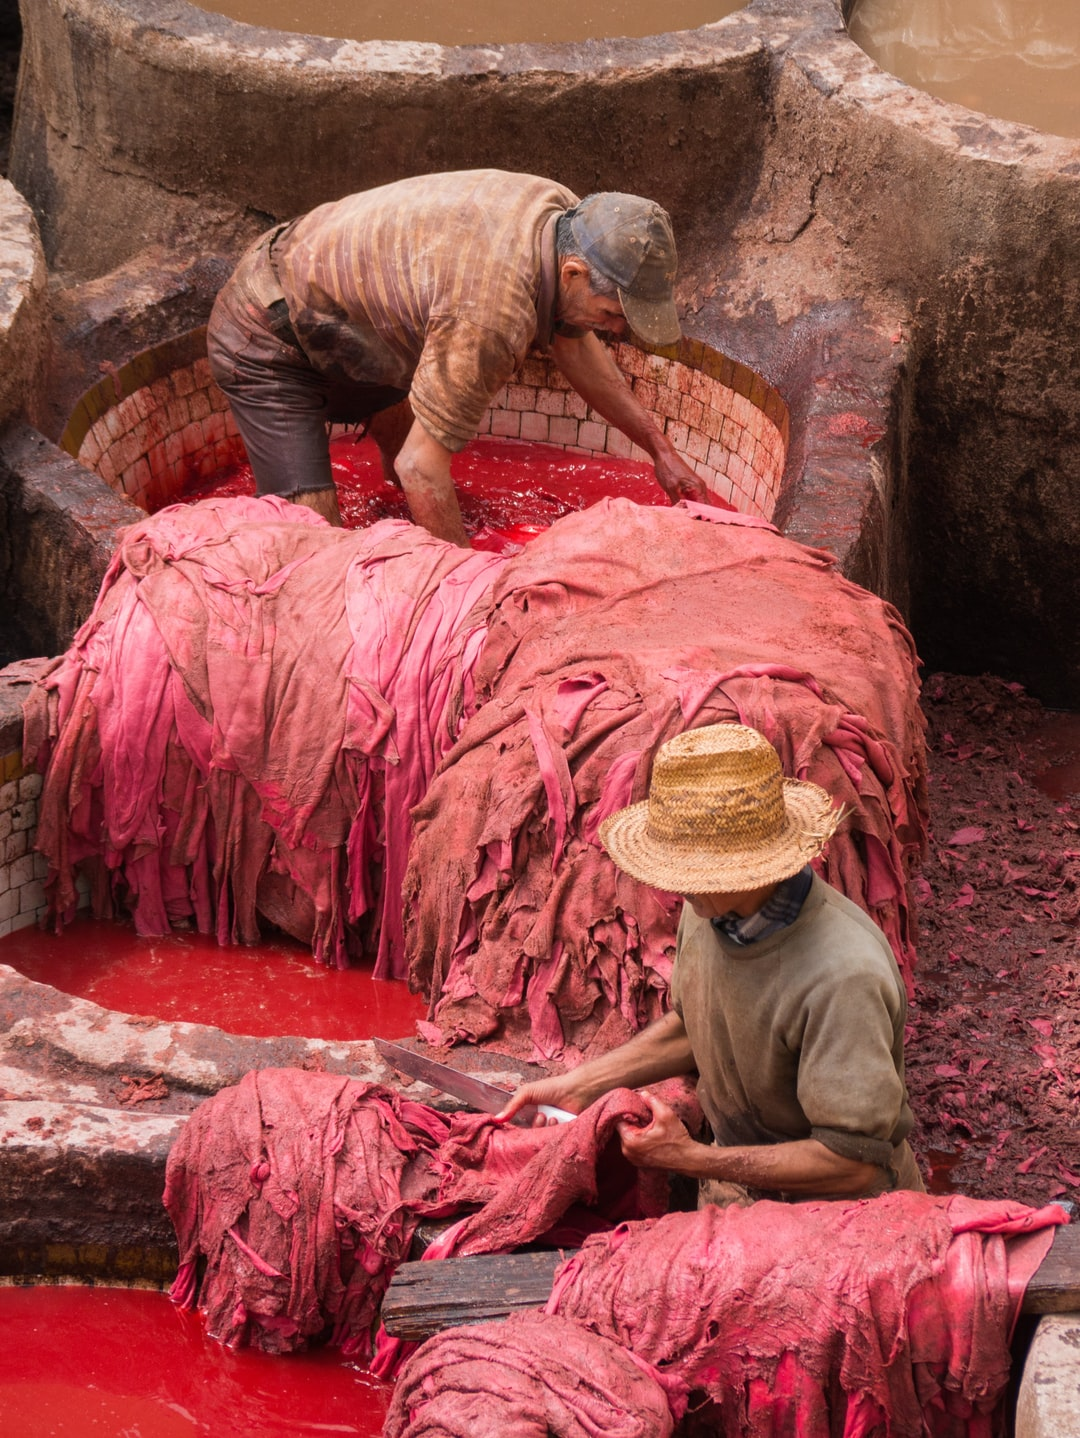 The tanners of Fez have been making leather in the same way since the 11th century. Through an odor of lime, feces, and animal skins the beauty of the tanneries and the workers show the rich history and culture of Morocco.